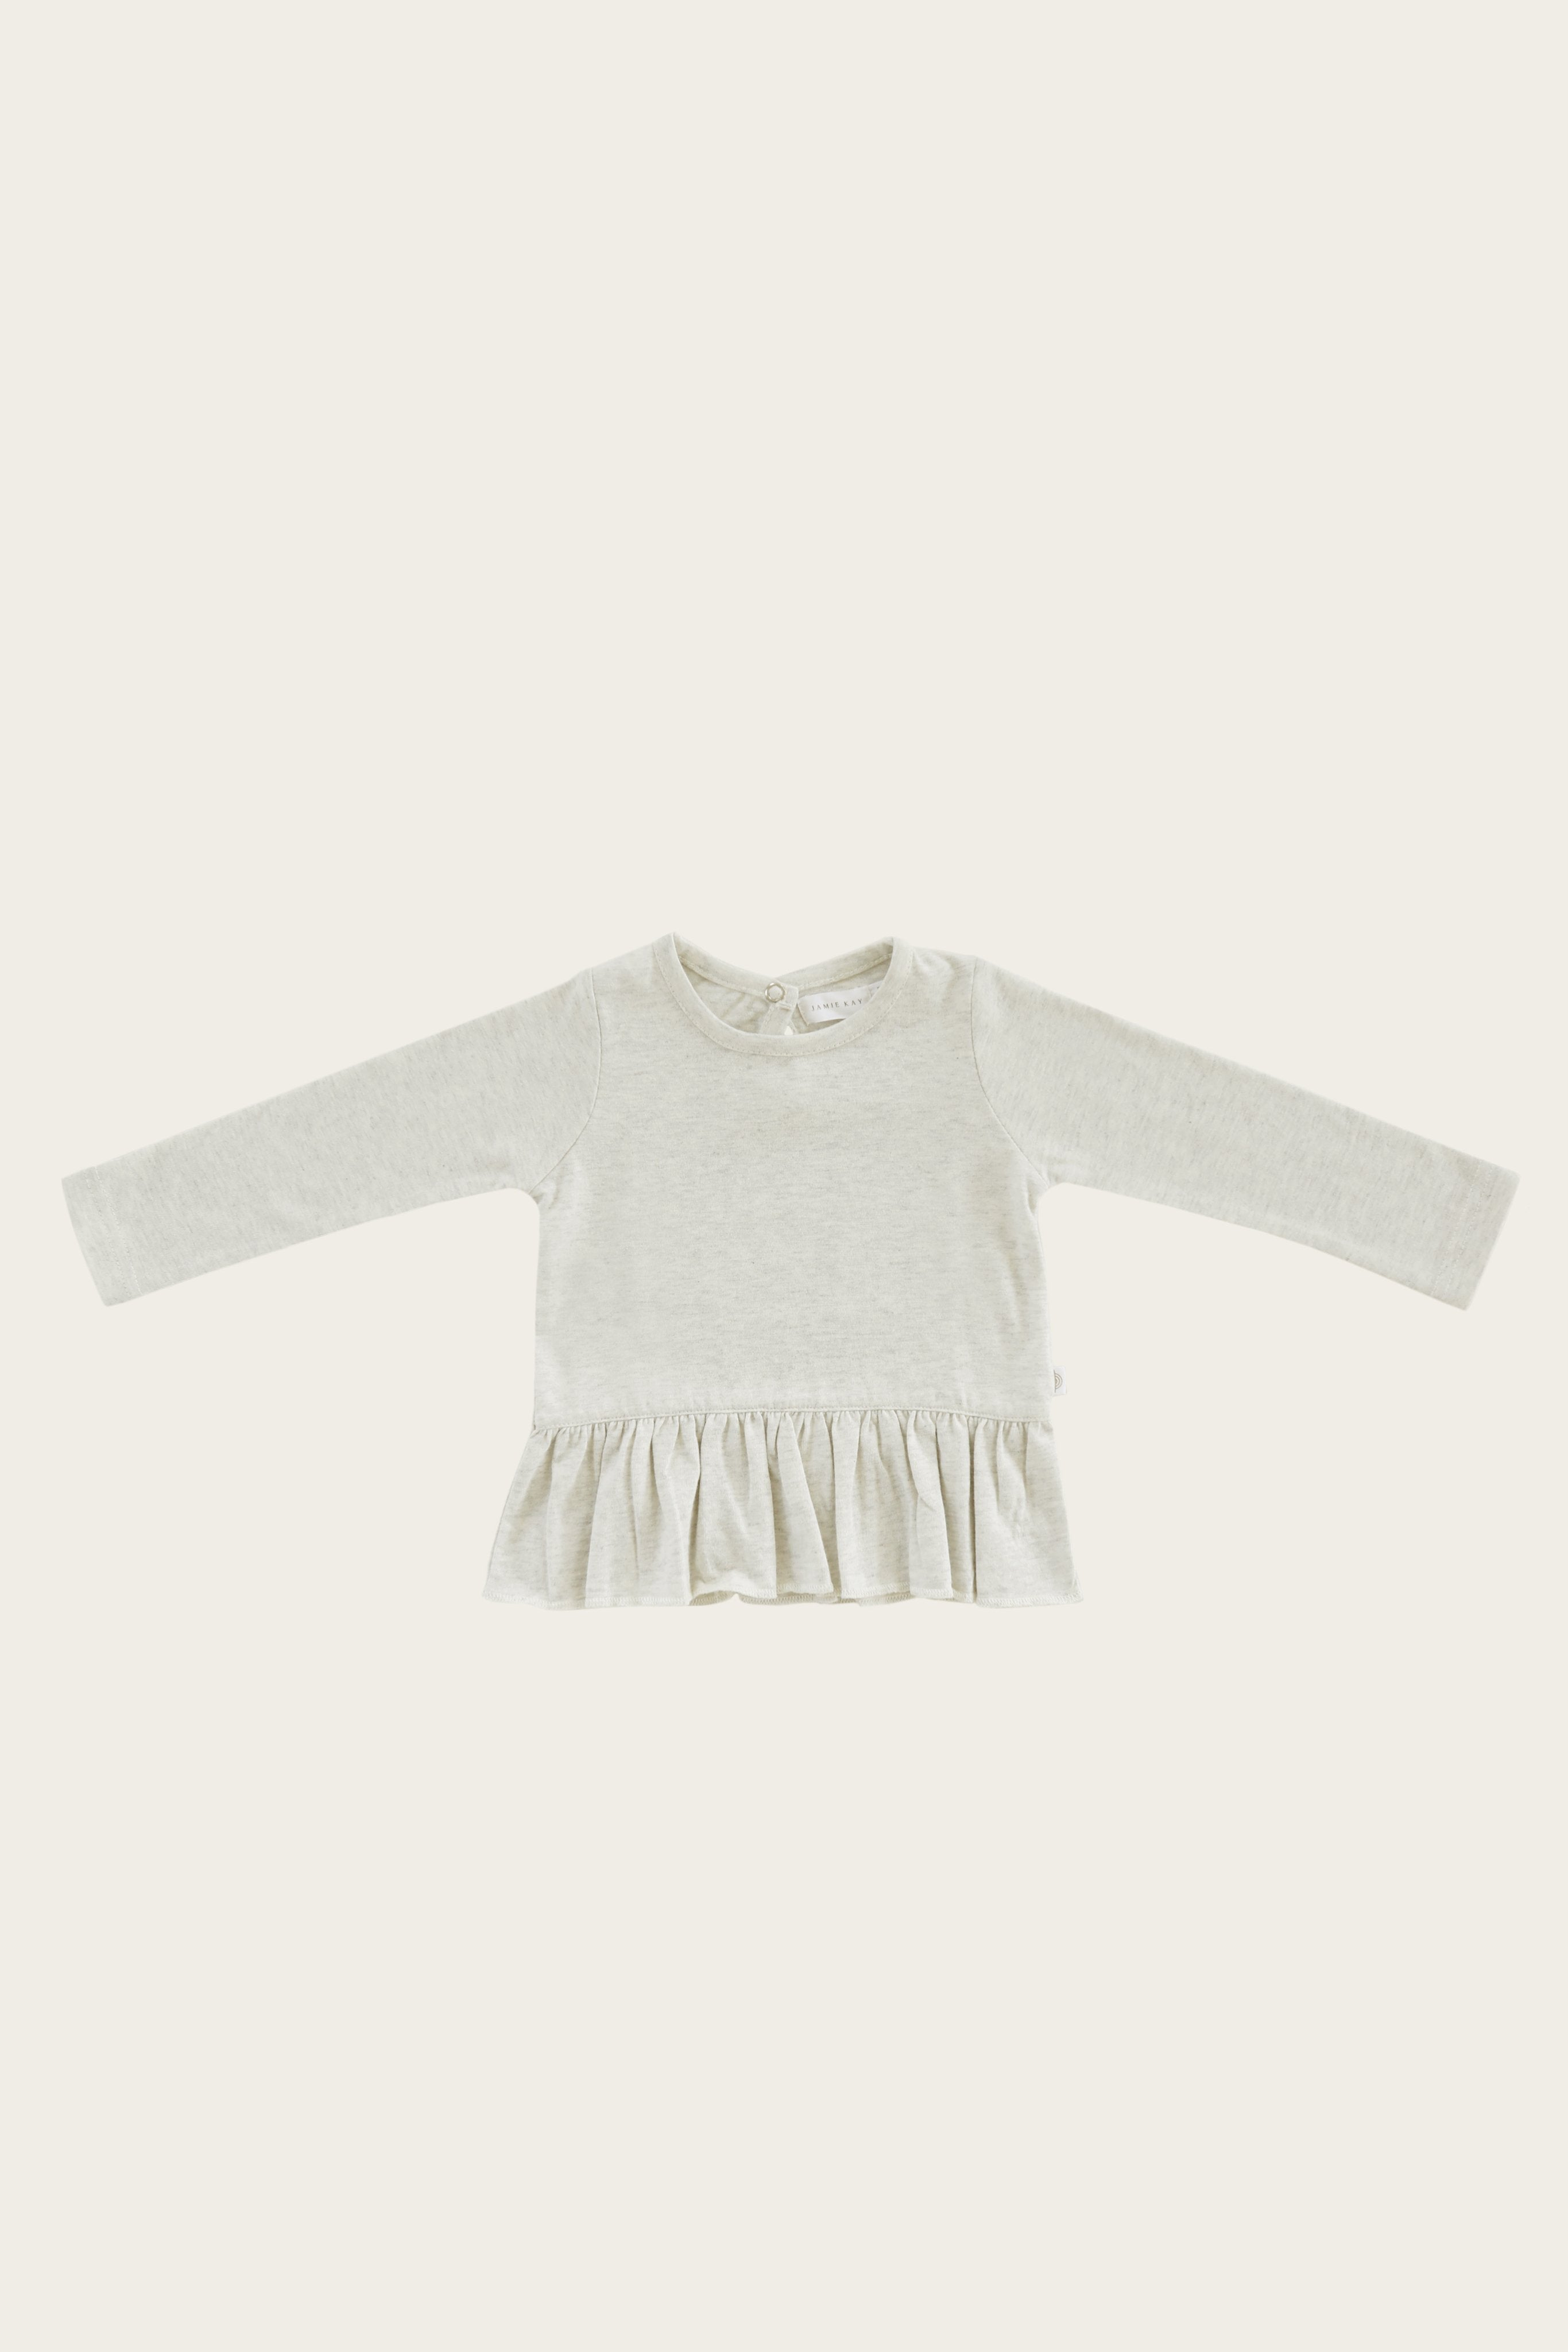 Organic Cotton Bailey Top - Linen